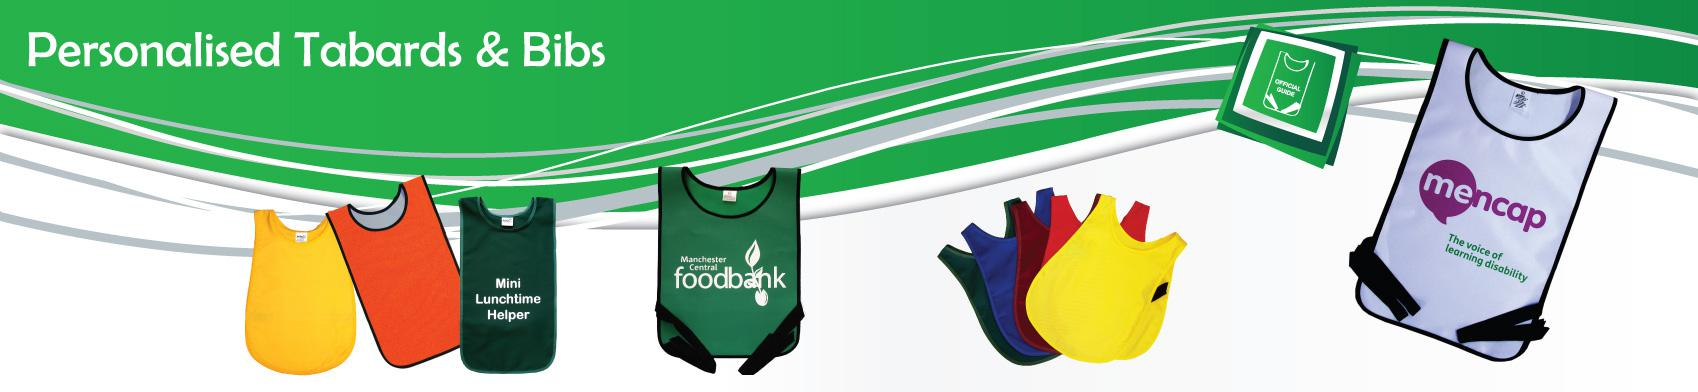 Personalisable Tabards and Bibs